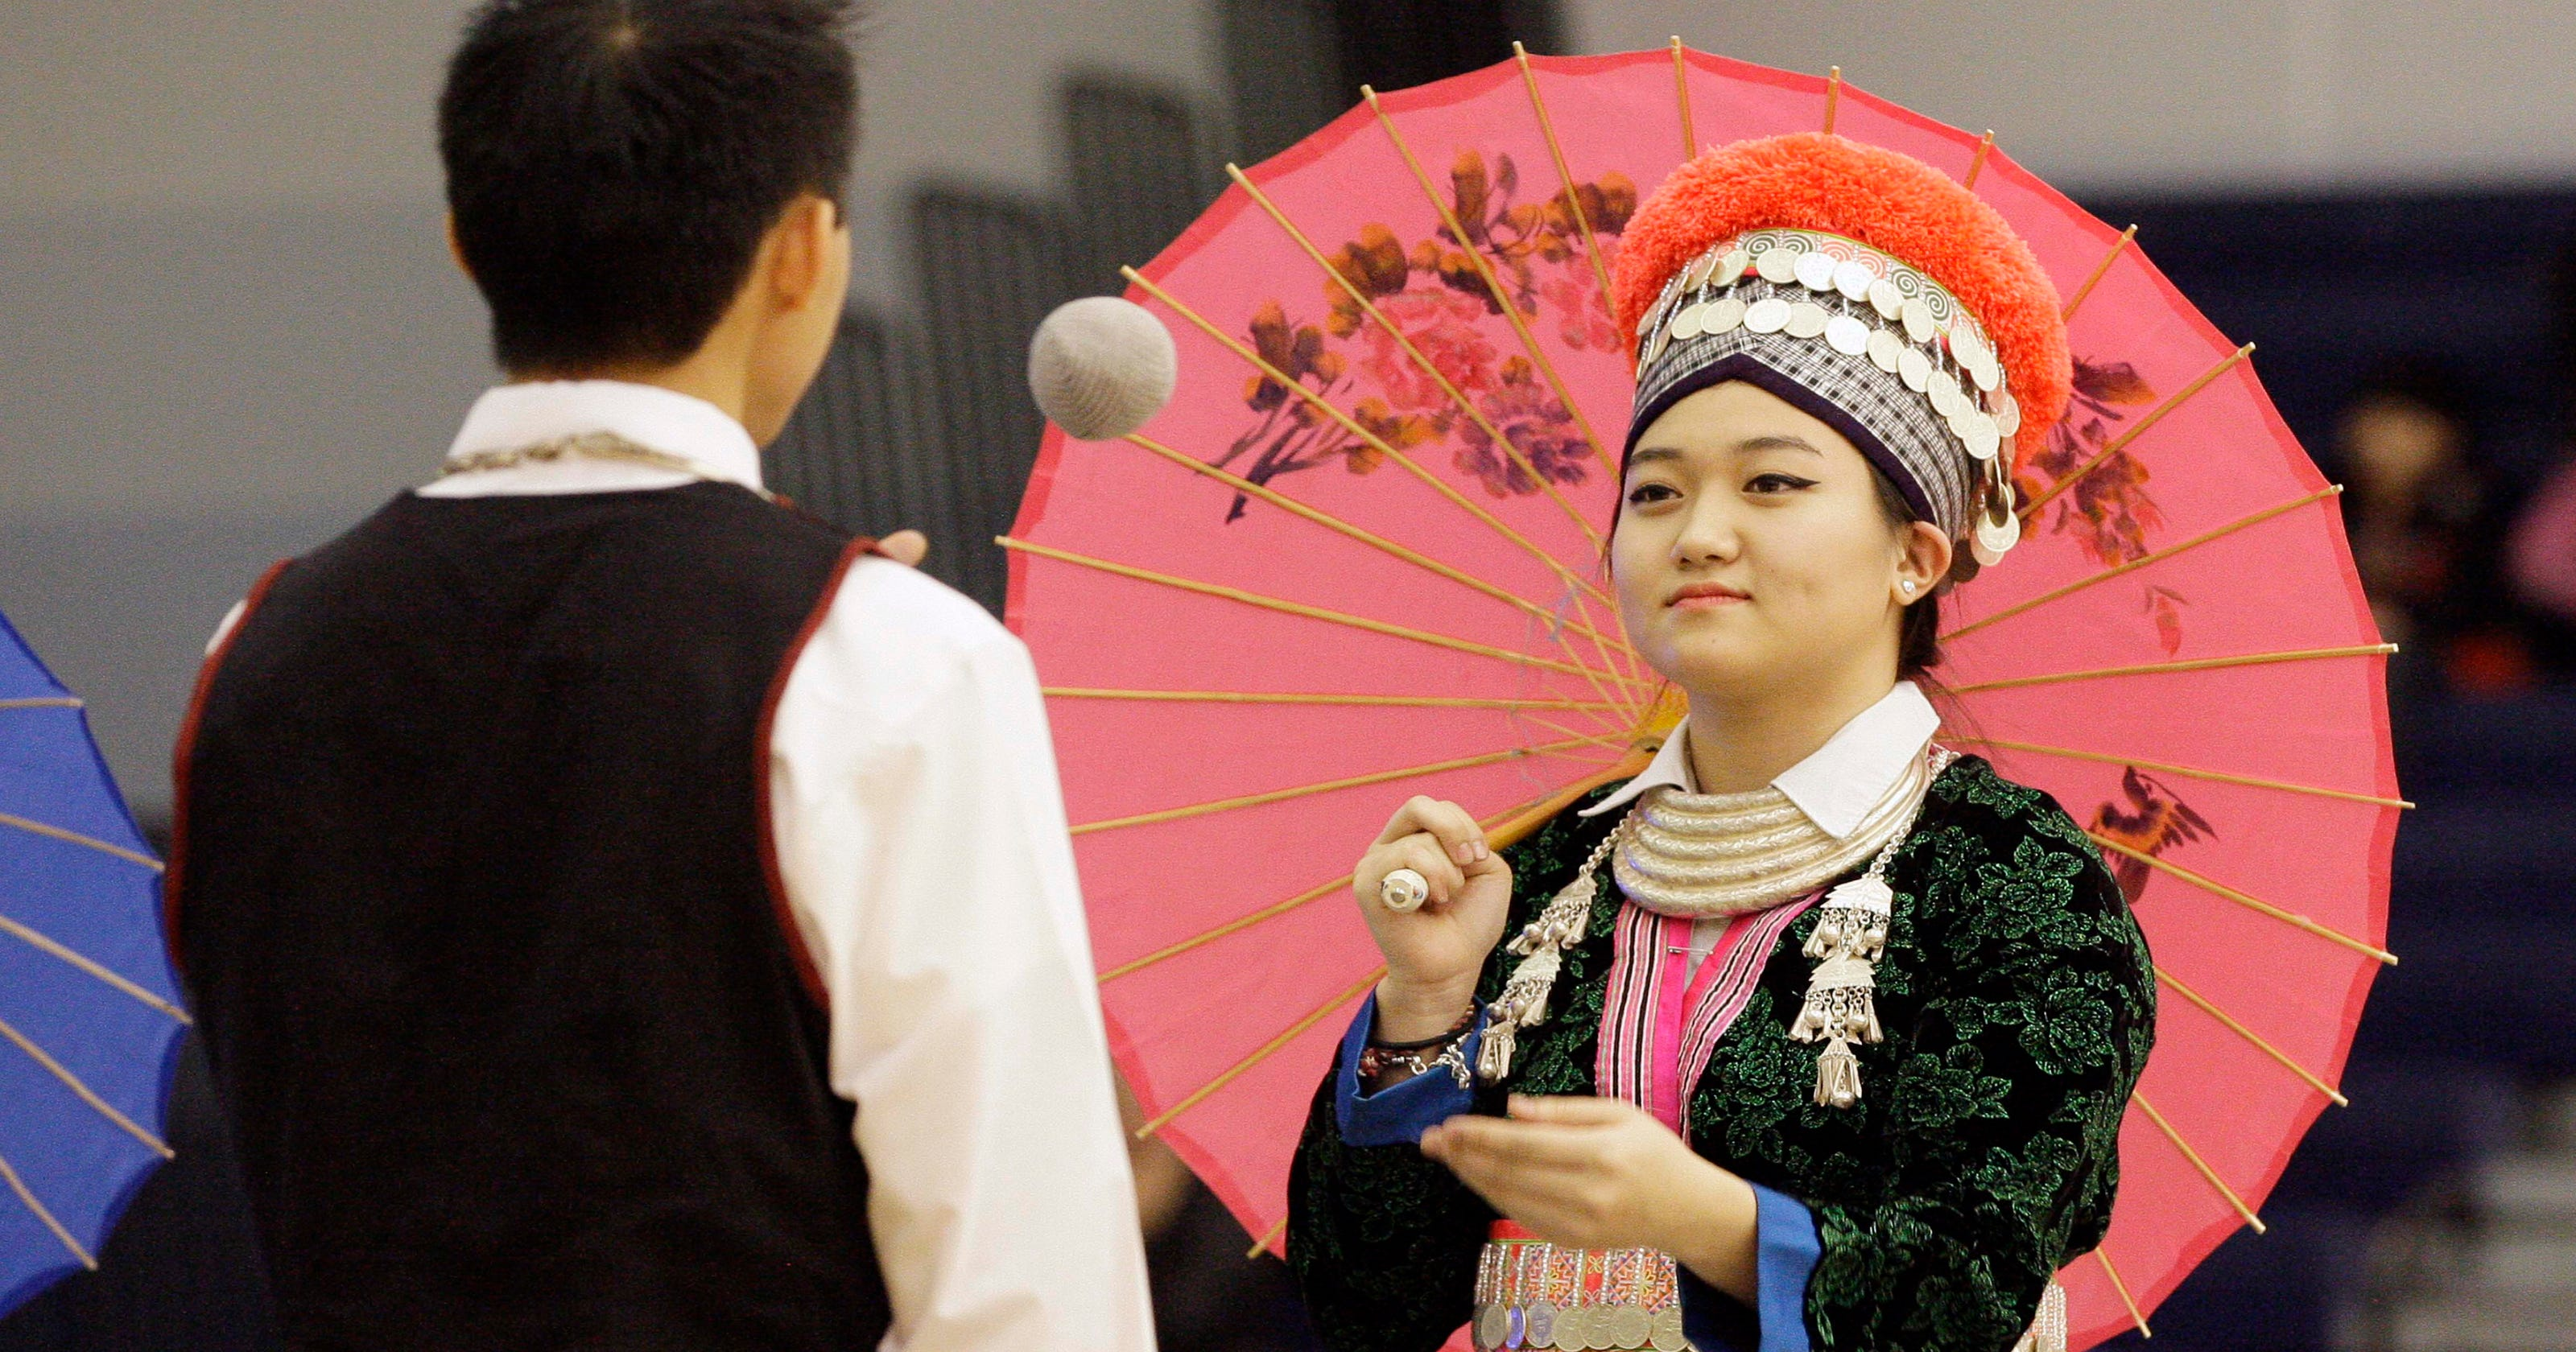 Hmong community celebrates the Hmong New Year in Sheboygan